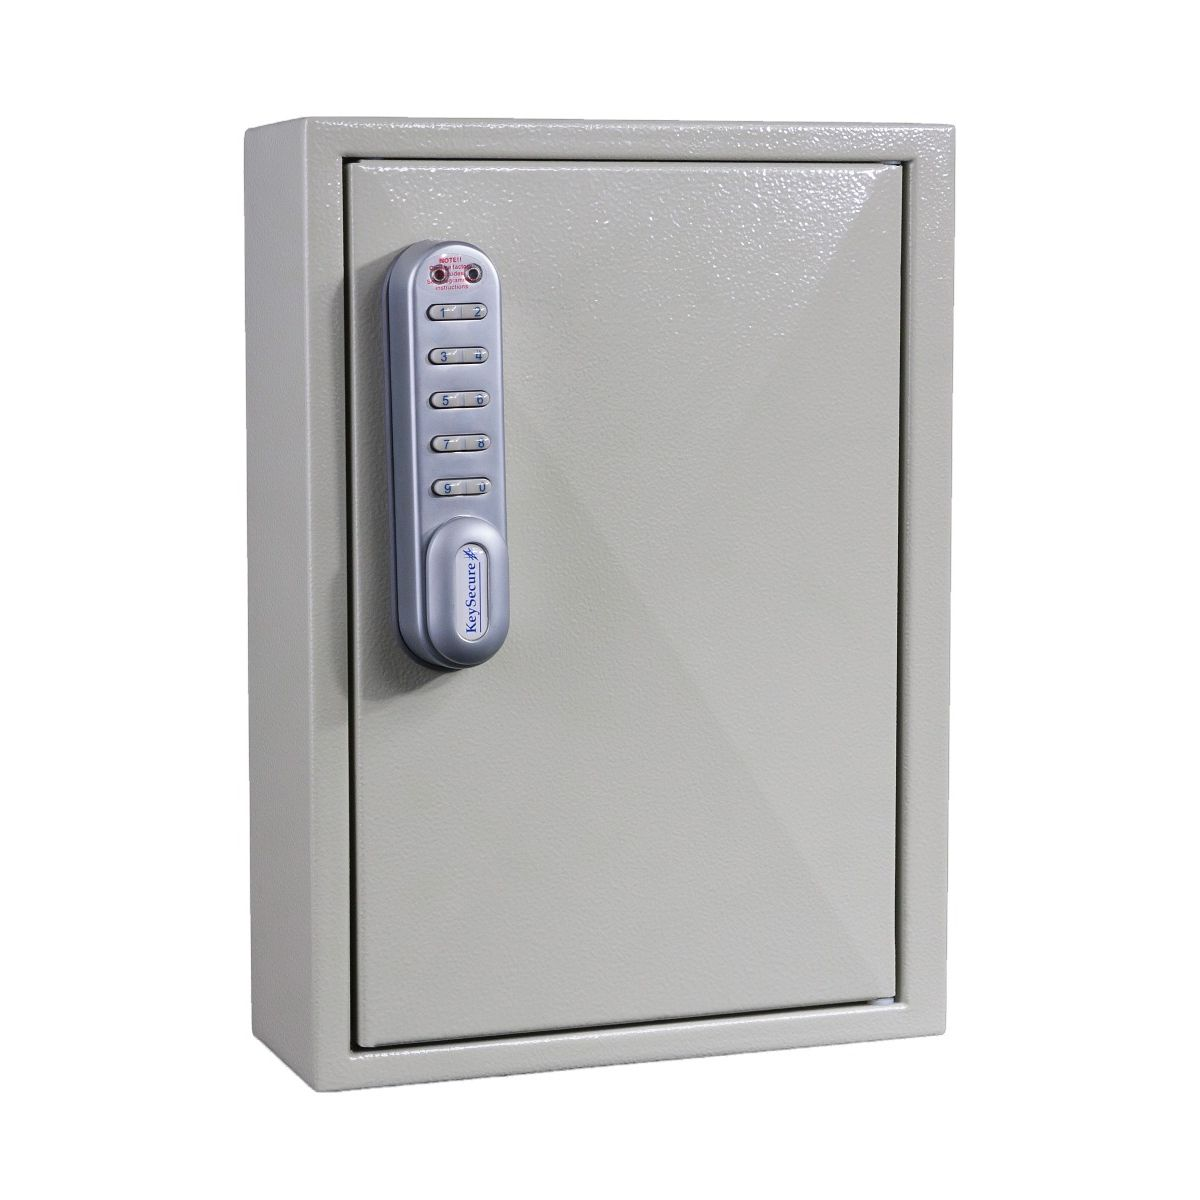 heavy_duty_key_cabinets_with_electronic_cam_lock_30_hook_31_x_22.5_x_10.5cm_closed.jpg